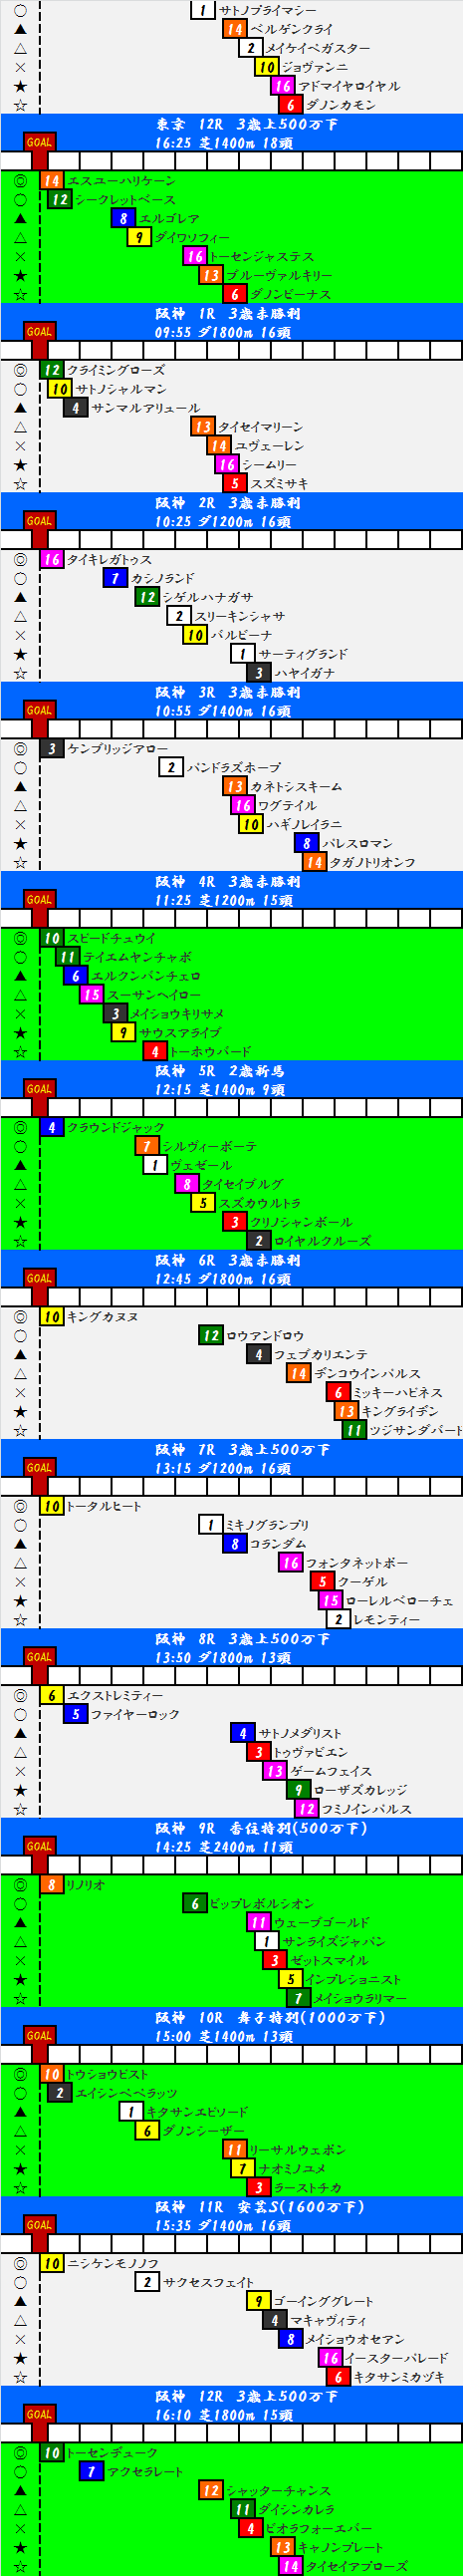 2015061302.png